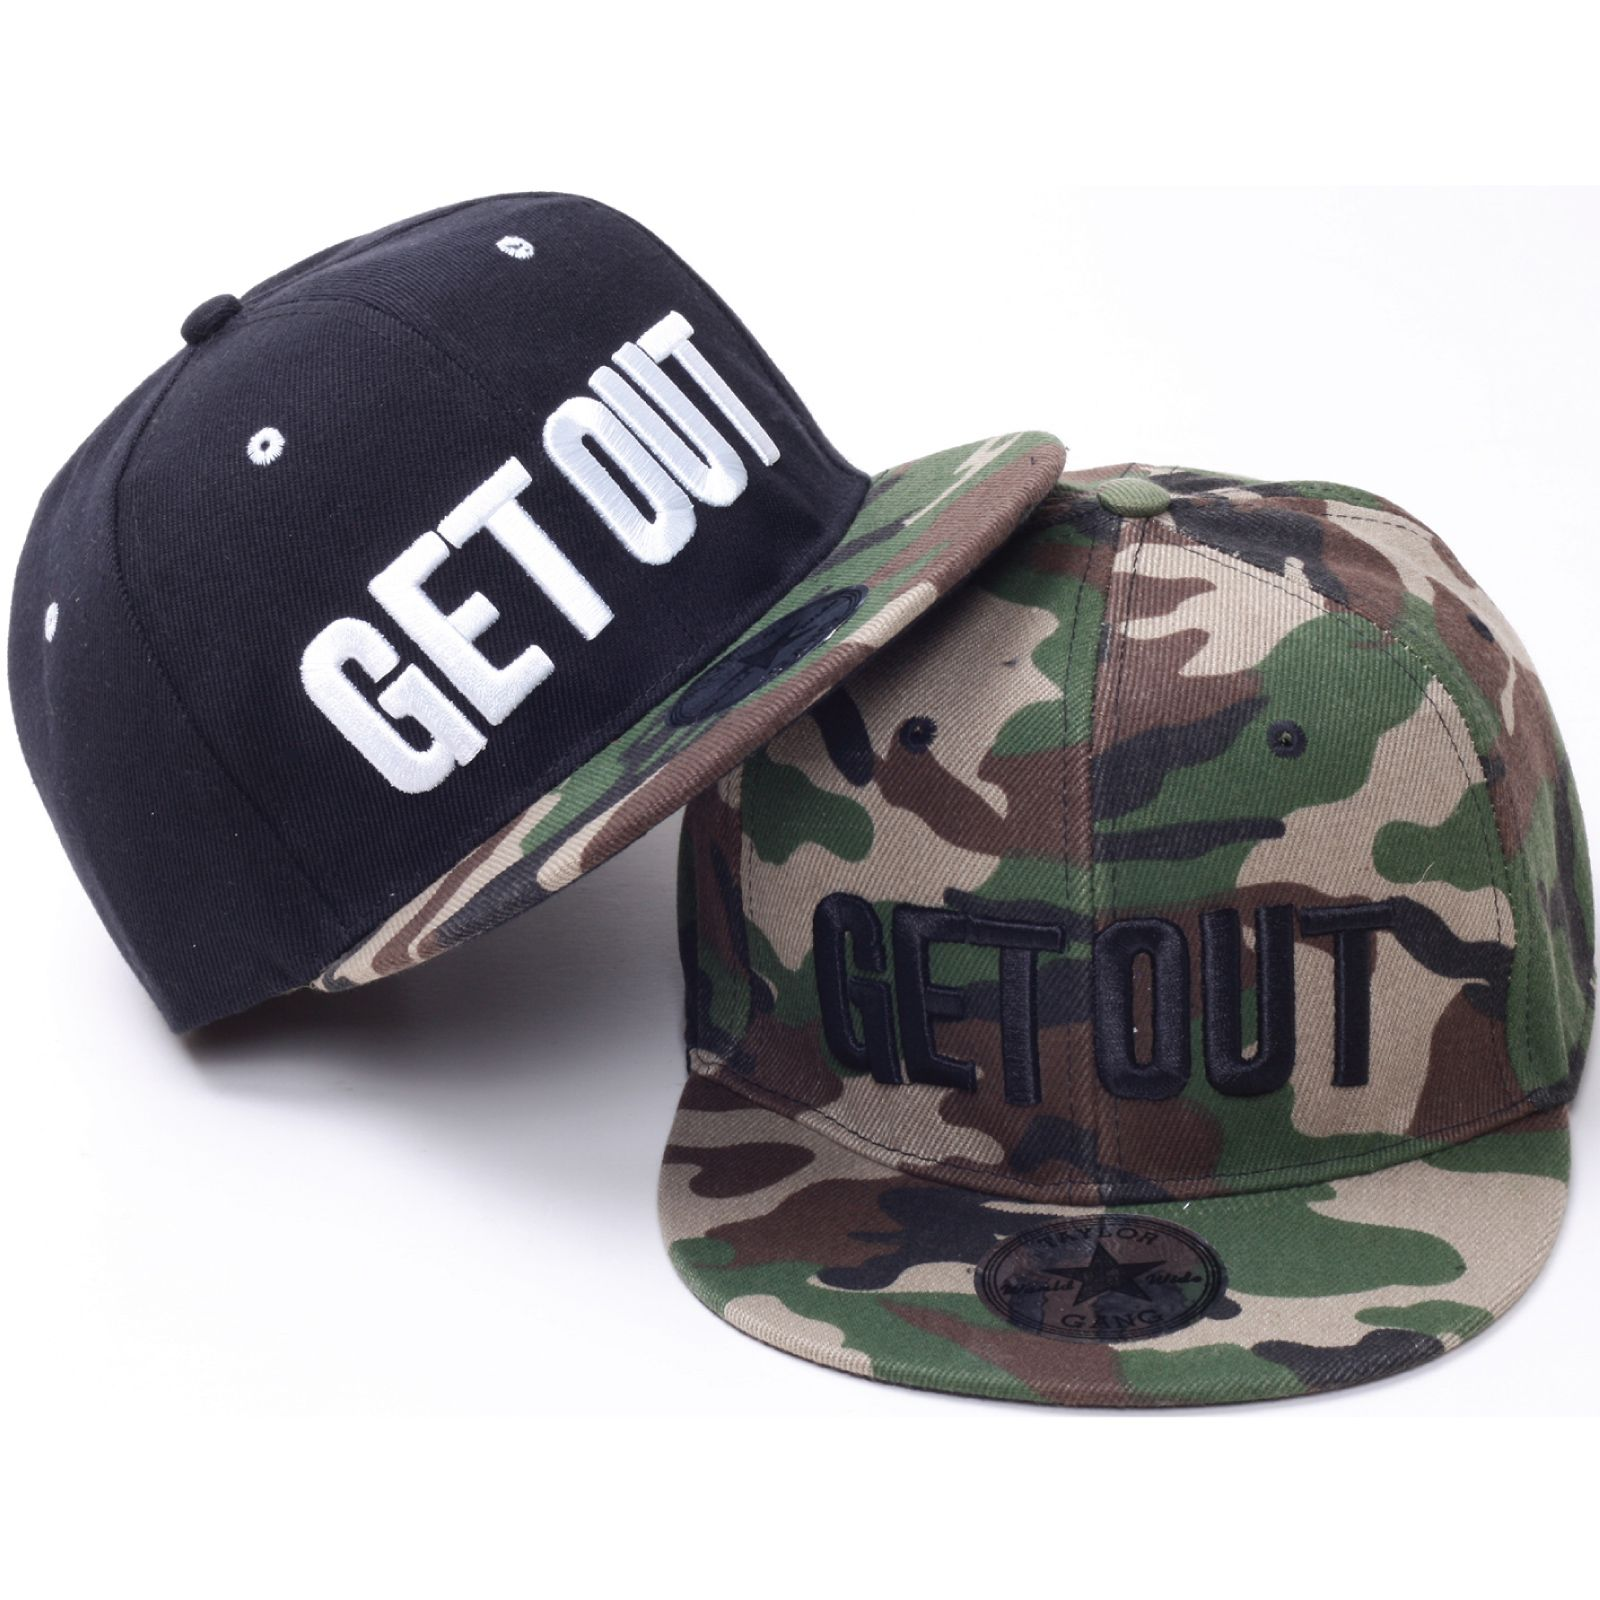 H45 Lettering Embroidery Camo Army Style Hiphop Bill Snapback Flat